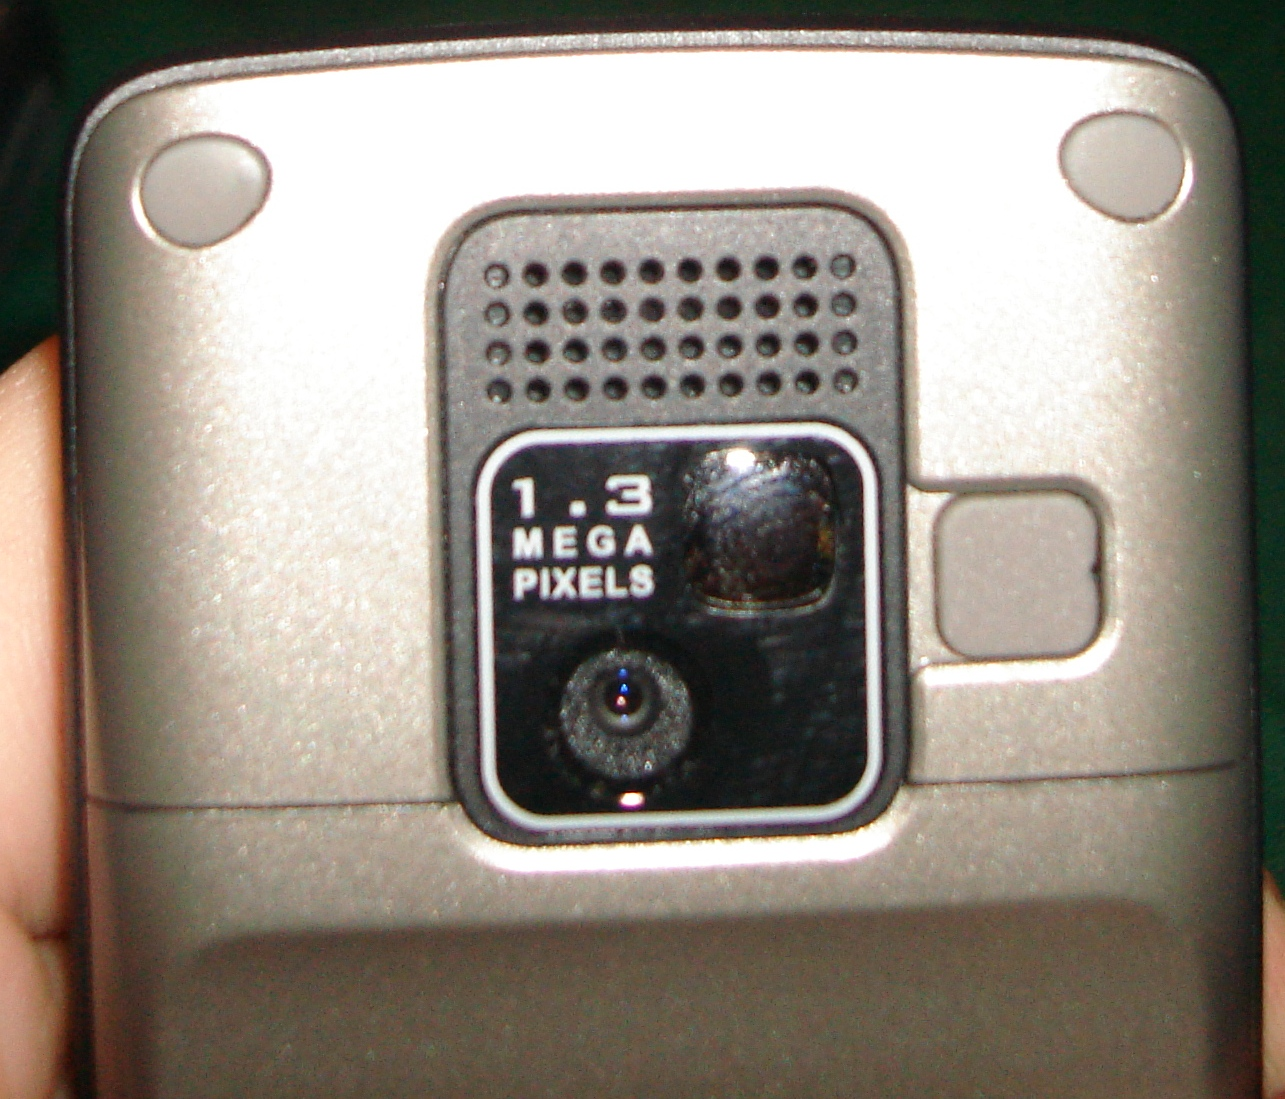 The hp ipaq 514 voice messenger review     Part 3  camera    TamsPPC